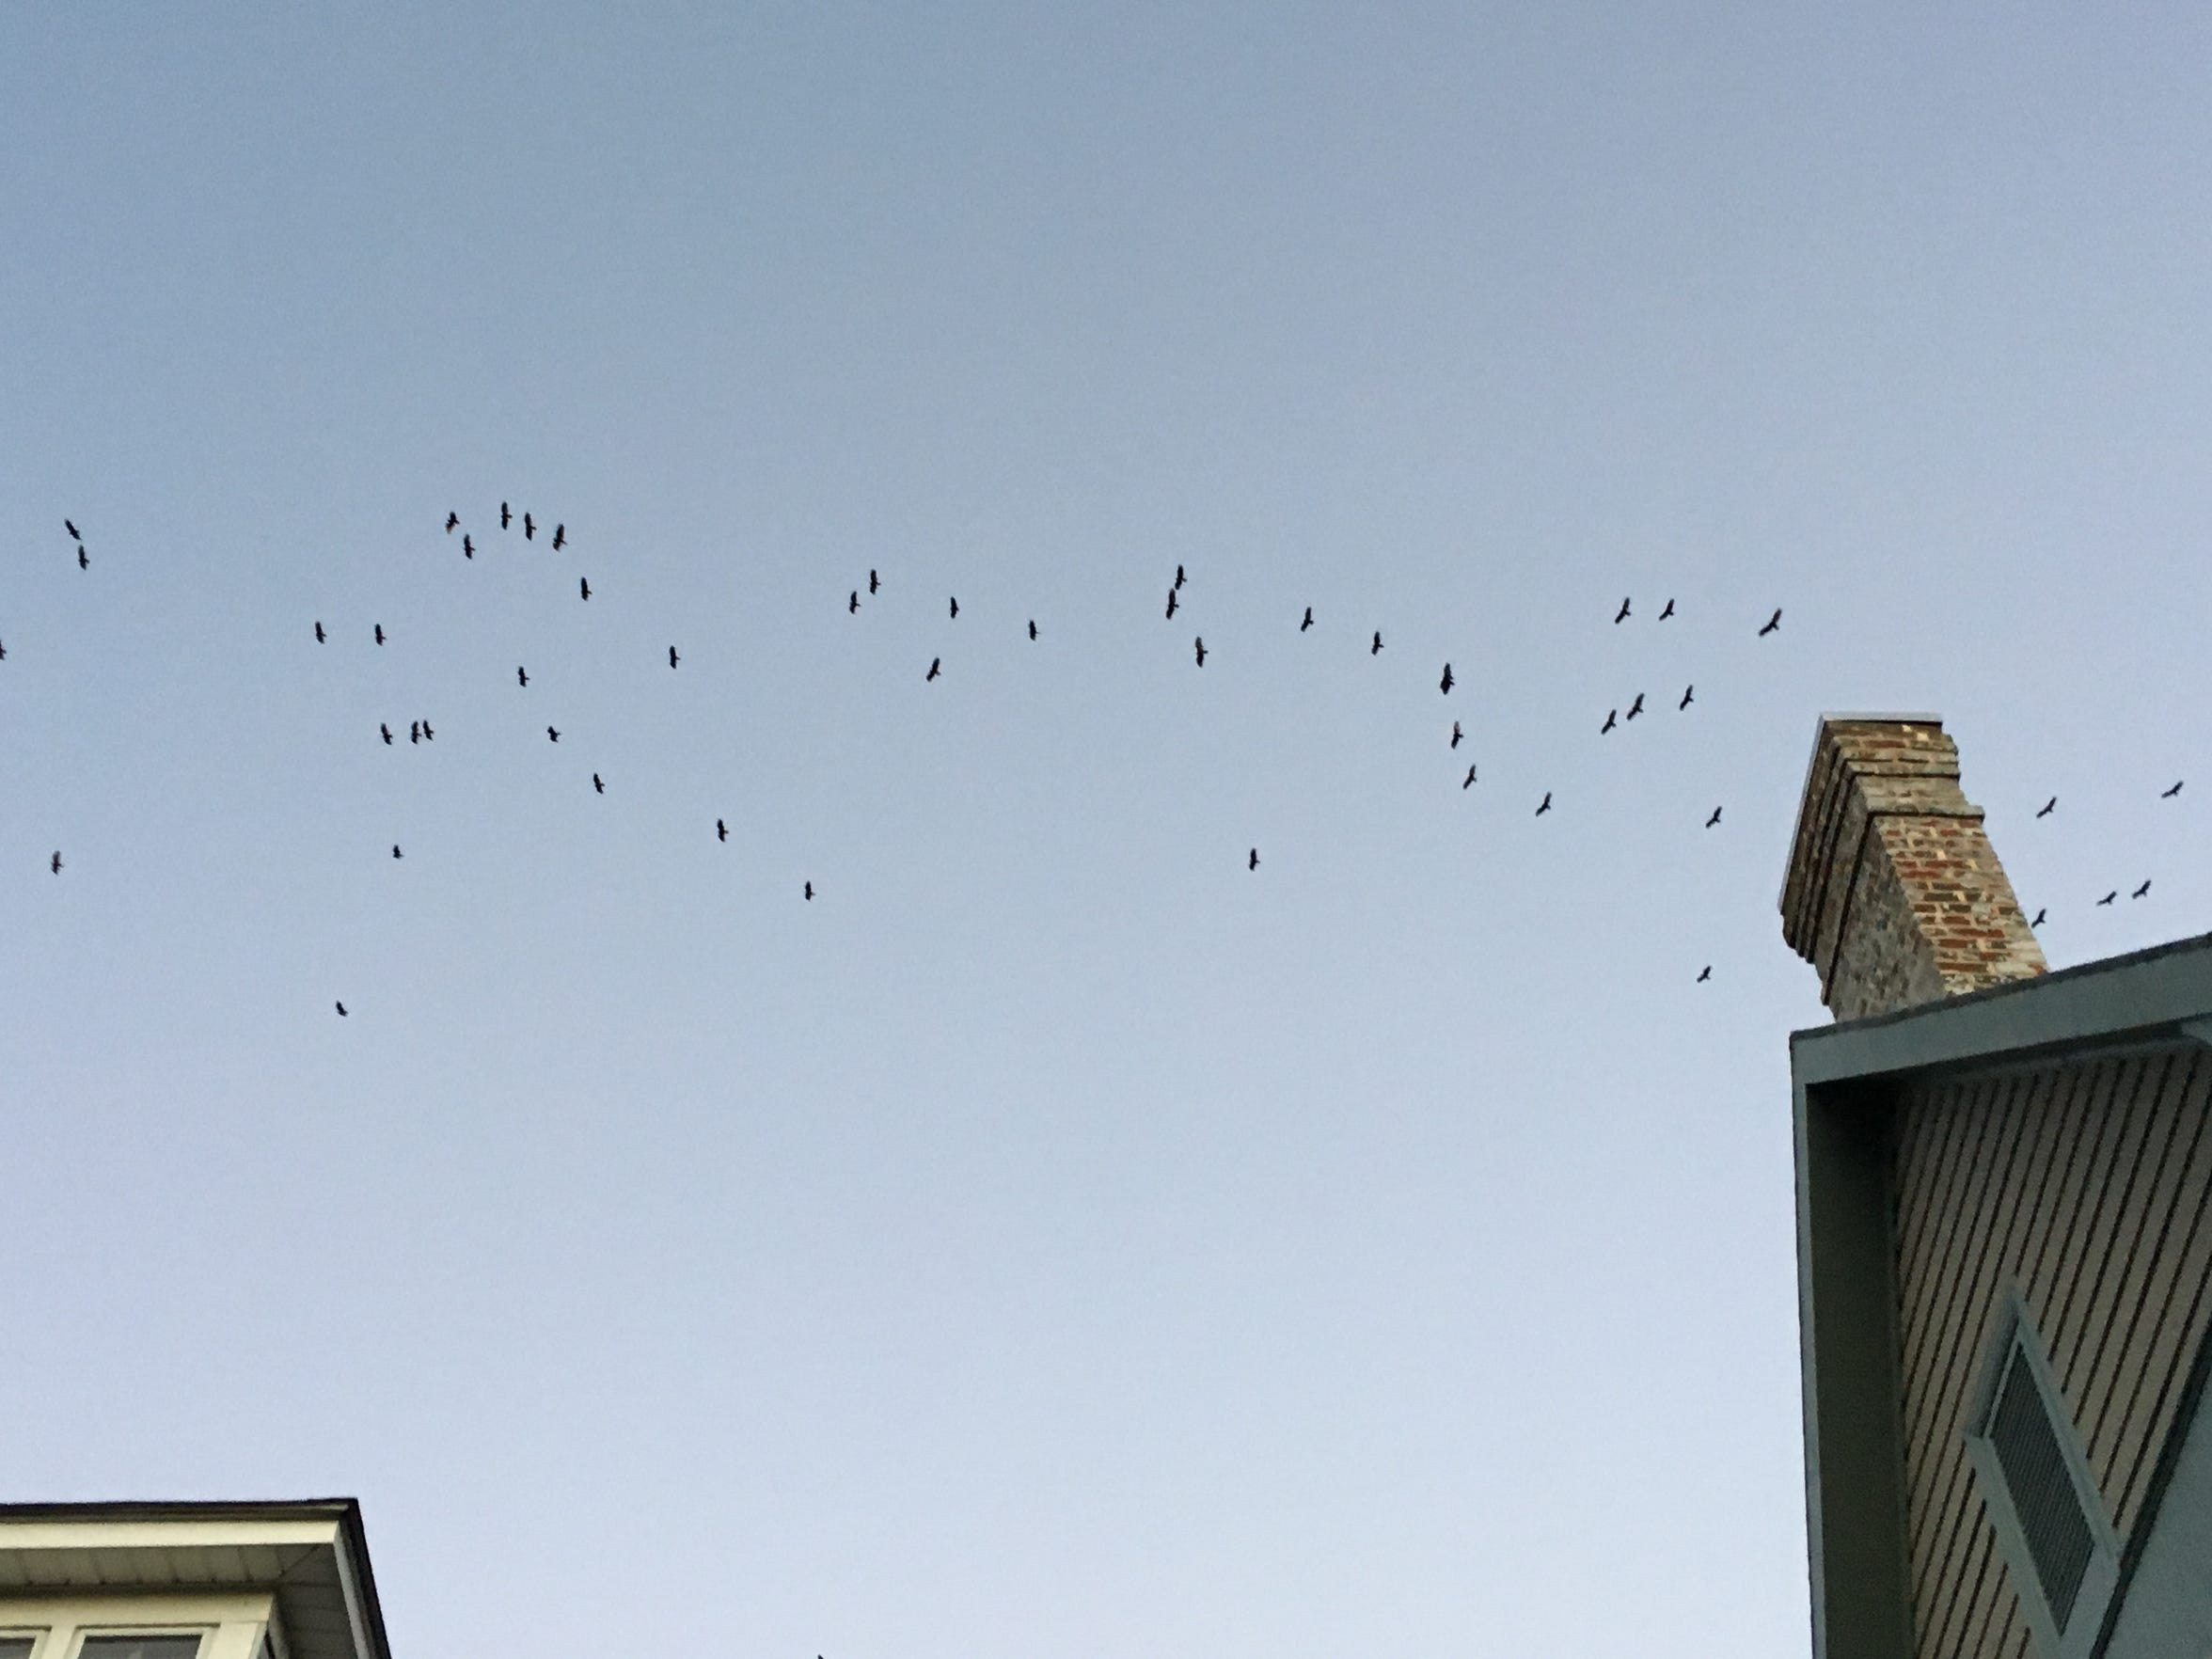 As vultures spin off a massive gathering over the Staunton Library, over 50 vultures slide over the housetops.